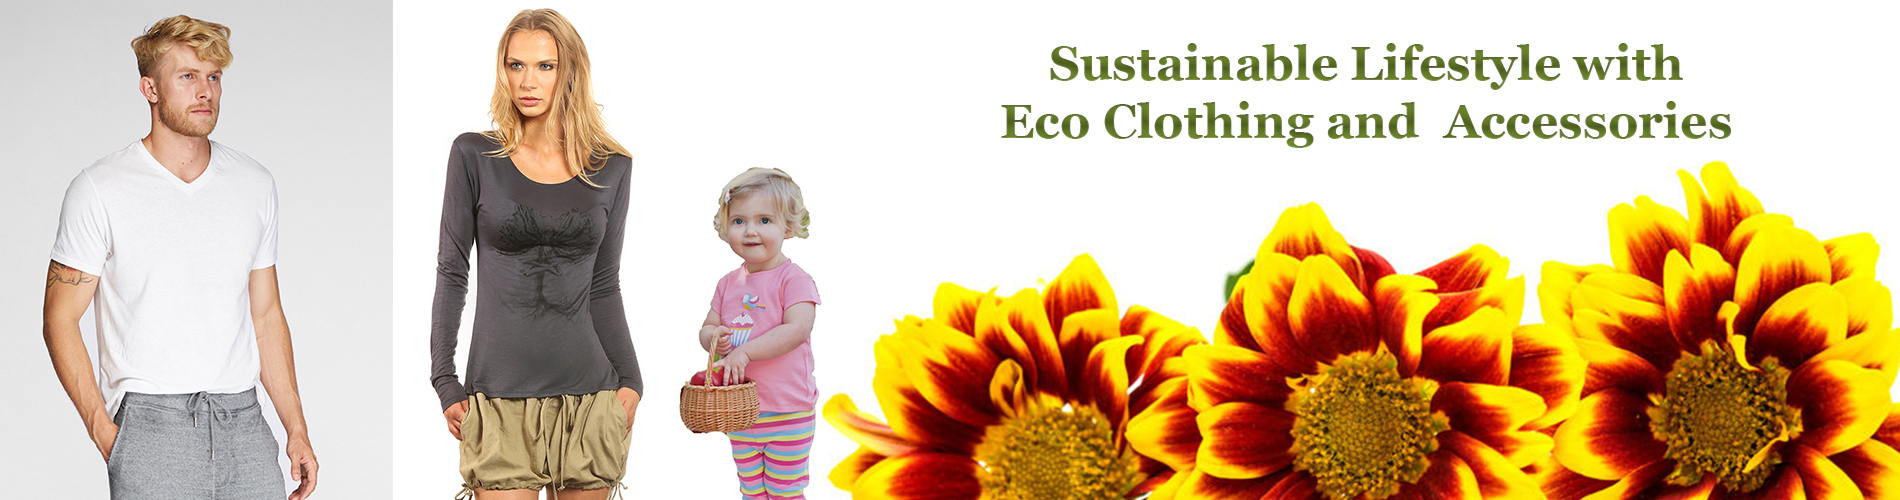 Eco Clothing for Men, Women and Children - Casual, Fitness, or Special Occasions